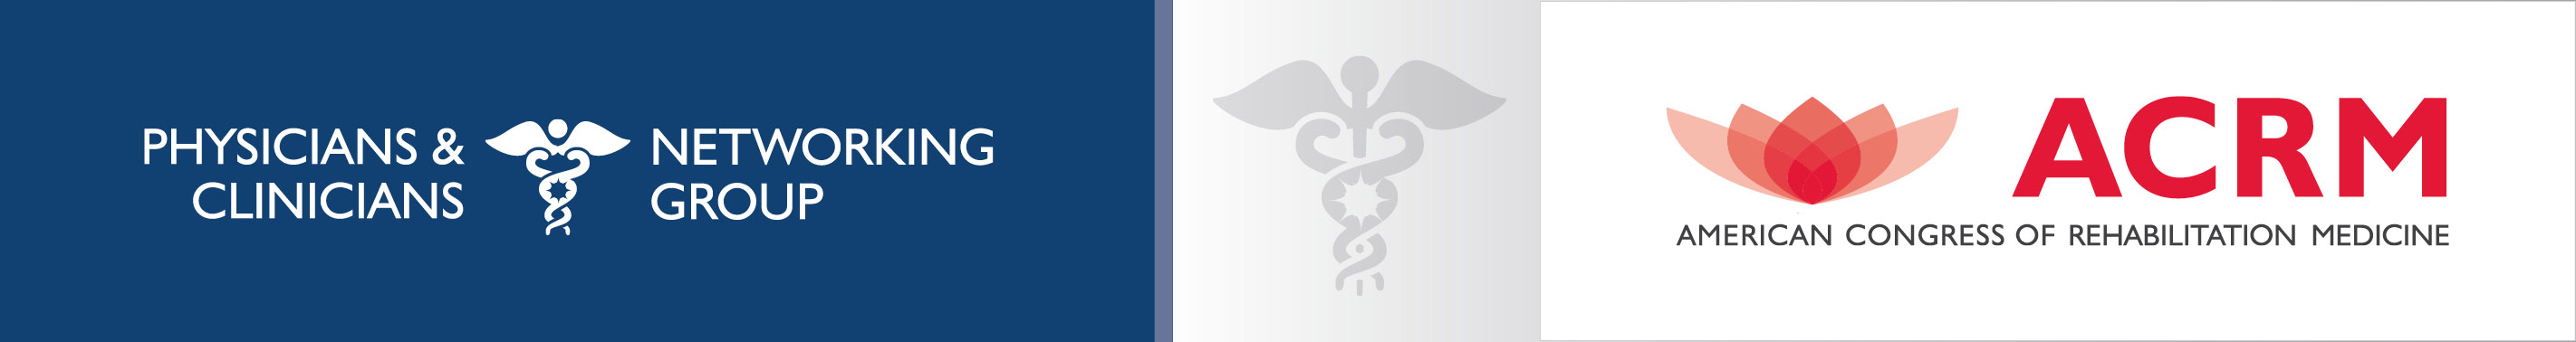 ACRM Physicians & Clinicians Networking Group banner